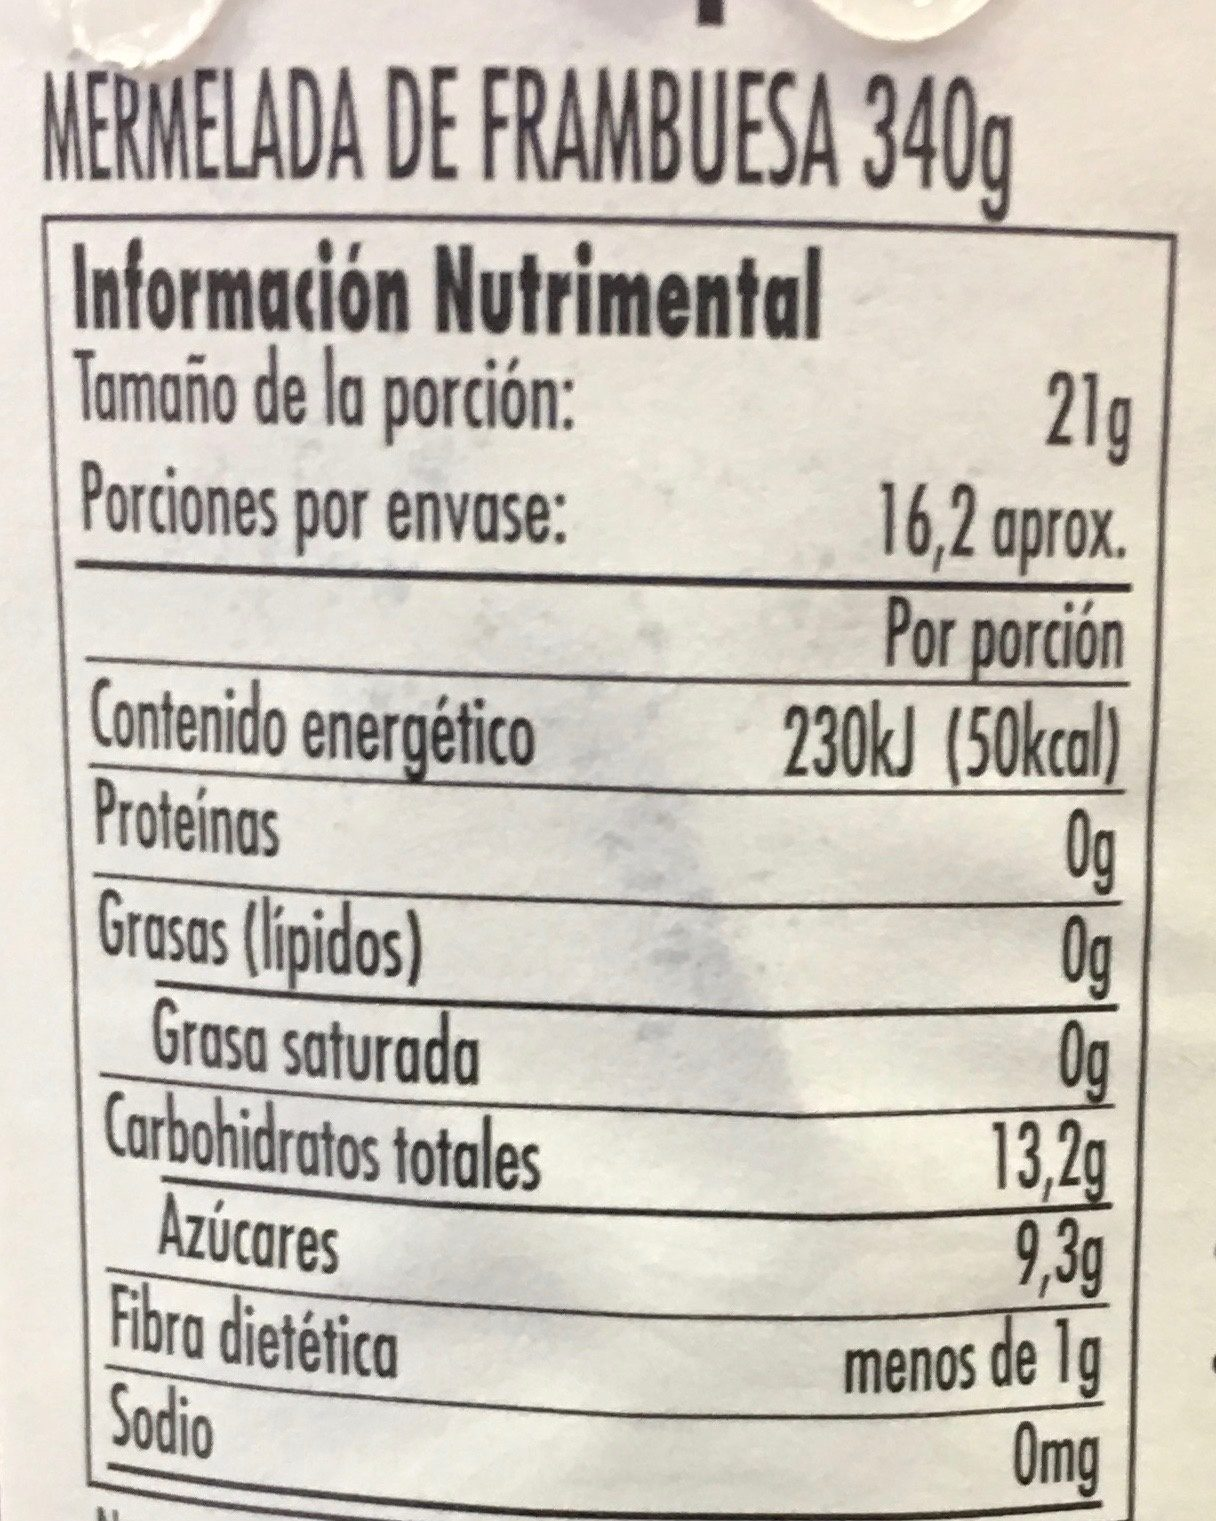 MERMELADA DE FRAMBUESA - Nutrition facts